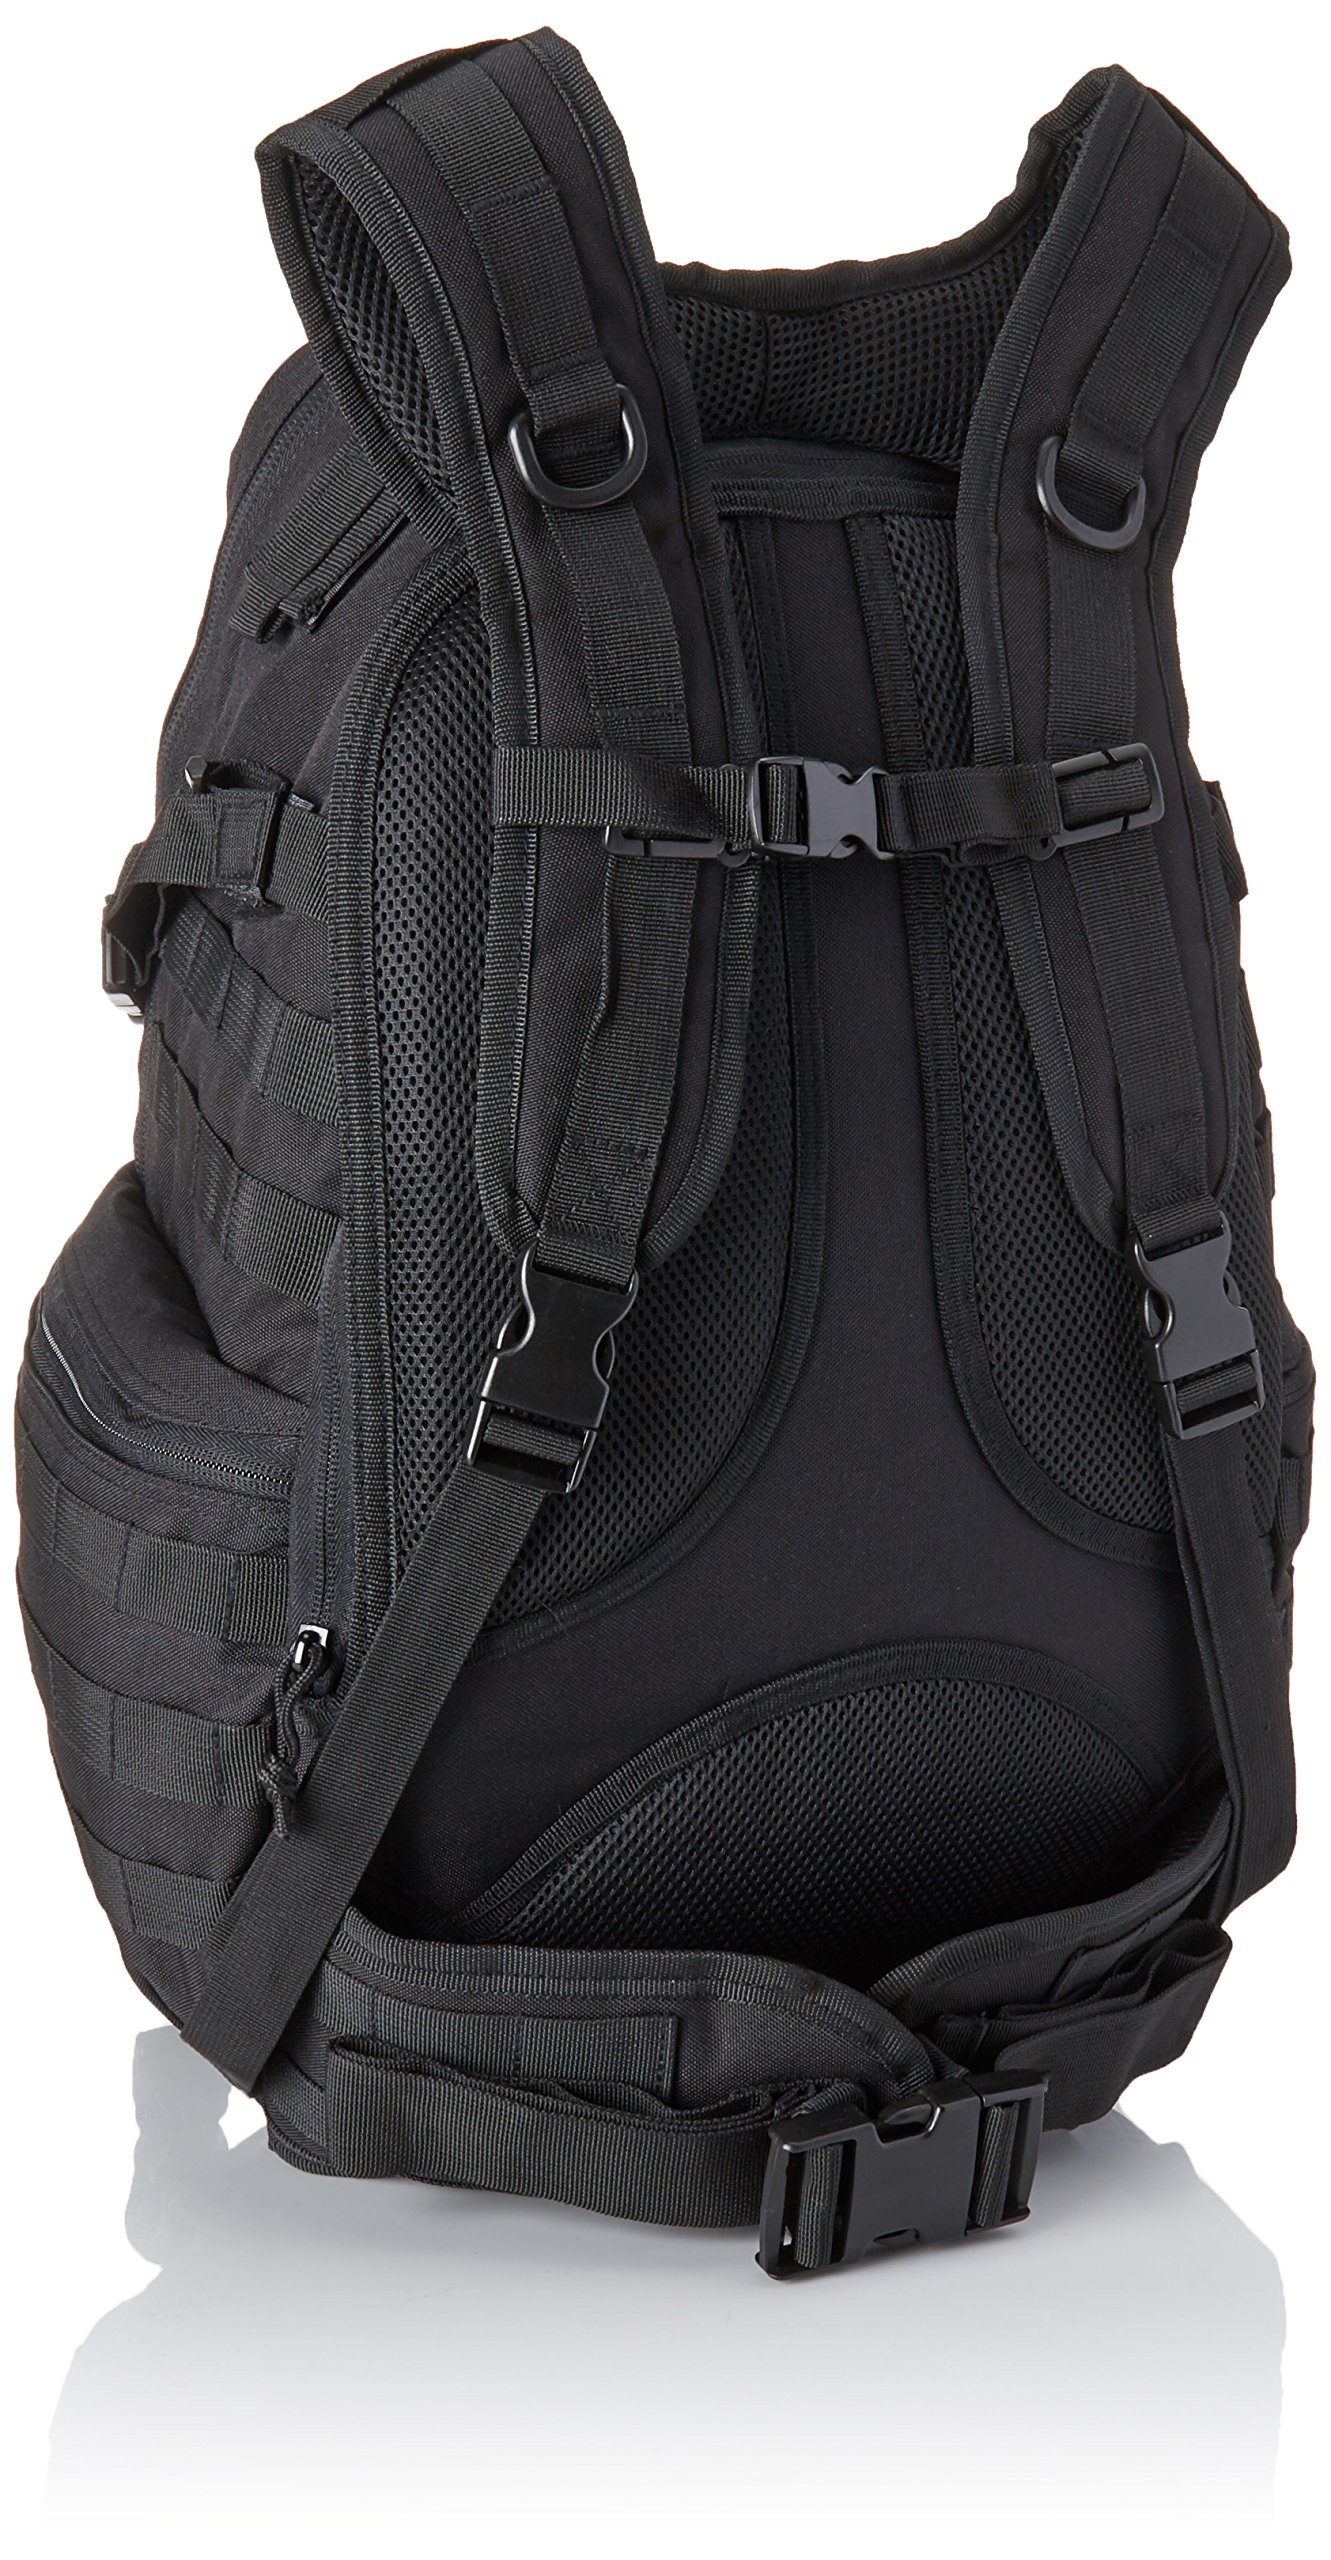 SOG-Specialty-Knives-amp-Tools-Opord-Tactical-Day-Pack-39-1-Liter-Storage thumbnail 3